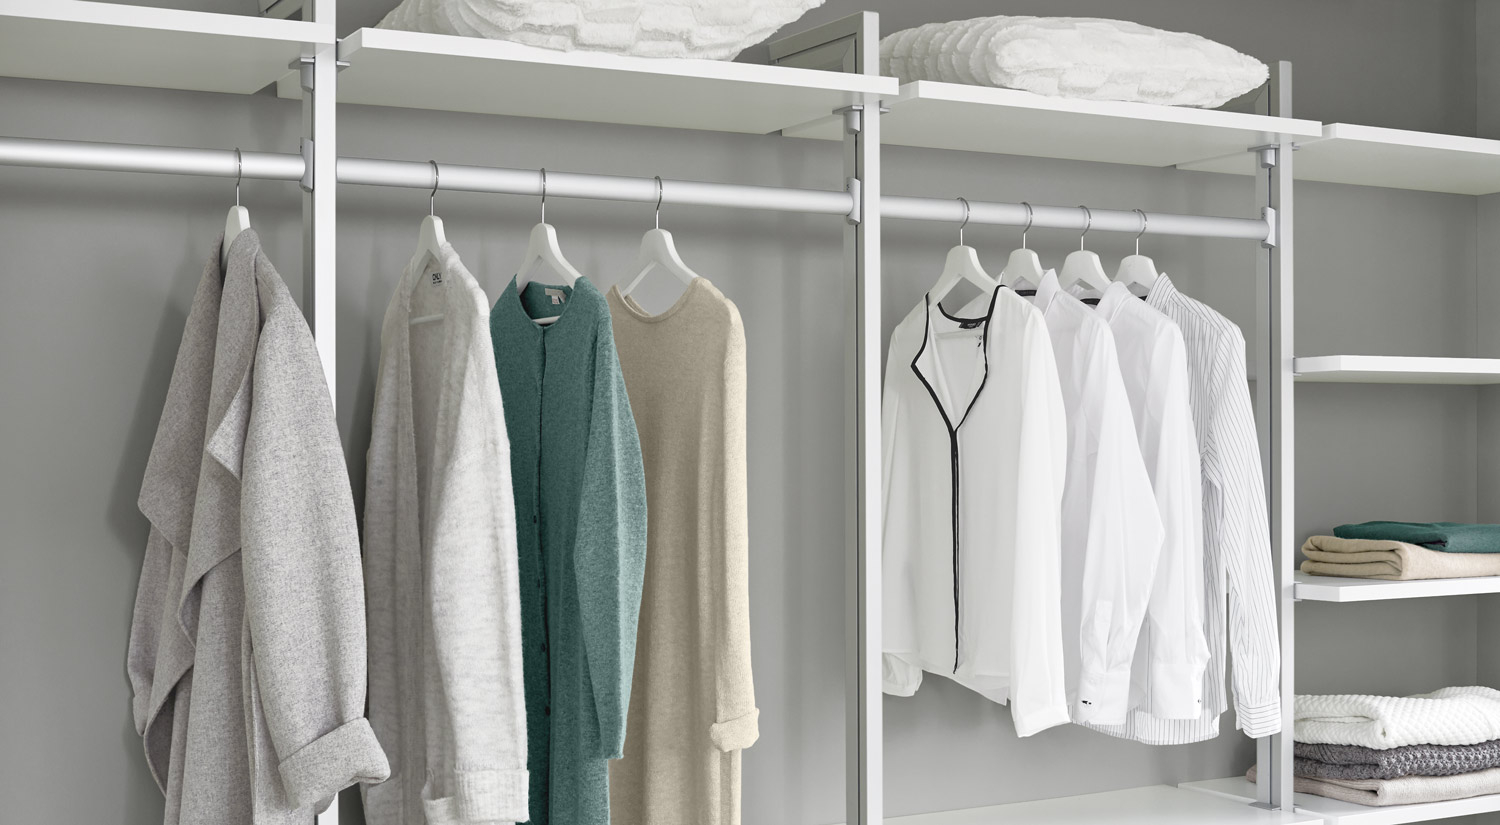 Wardrobe rail - On the floor to wall post of the CLOS-IT shelving system